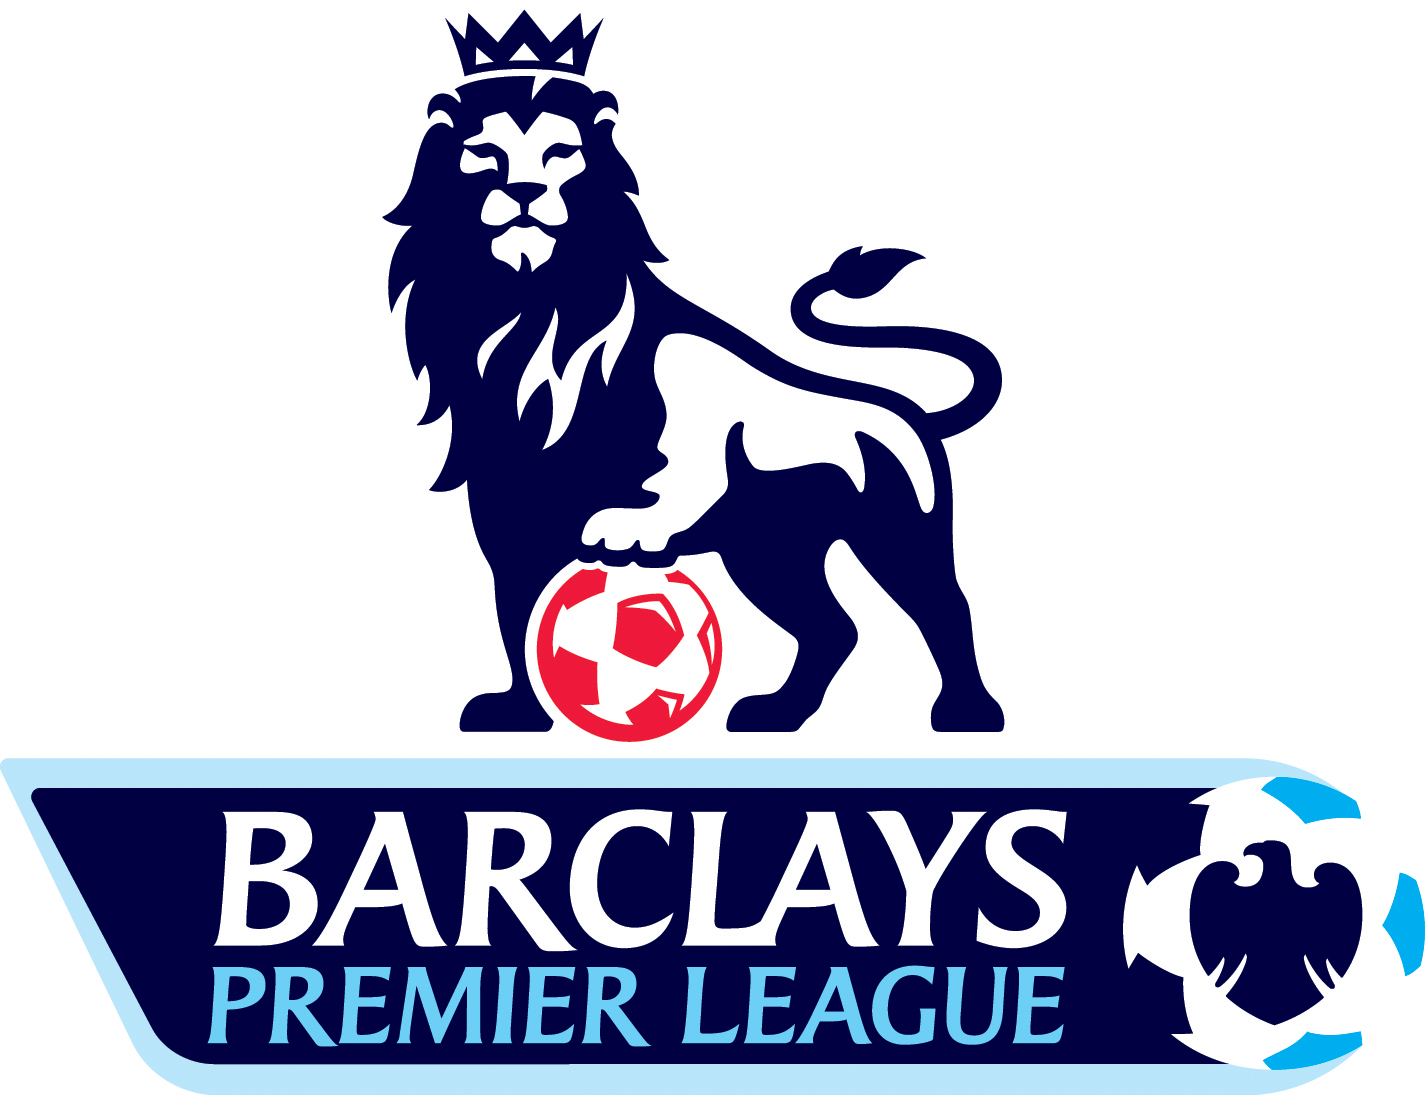 The Facebook and Twitter Premier League